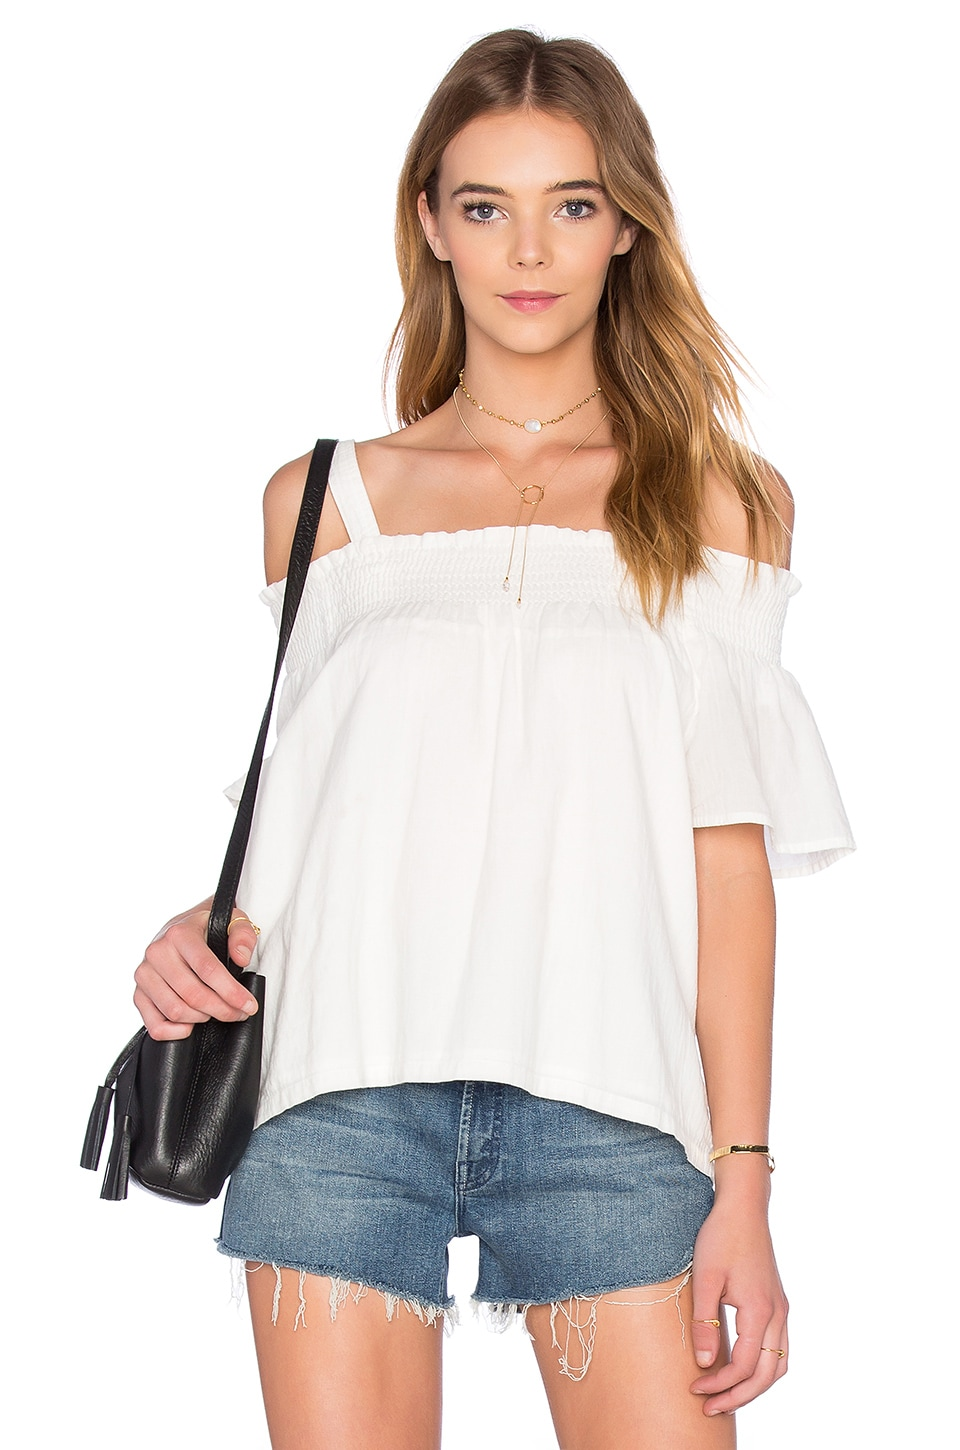 The Madeline Top by Current/Elliott